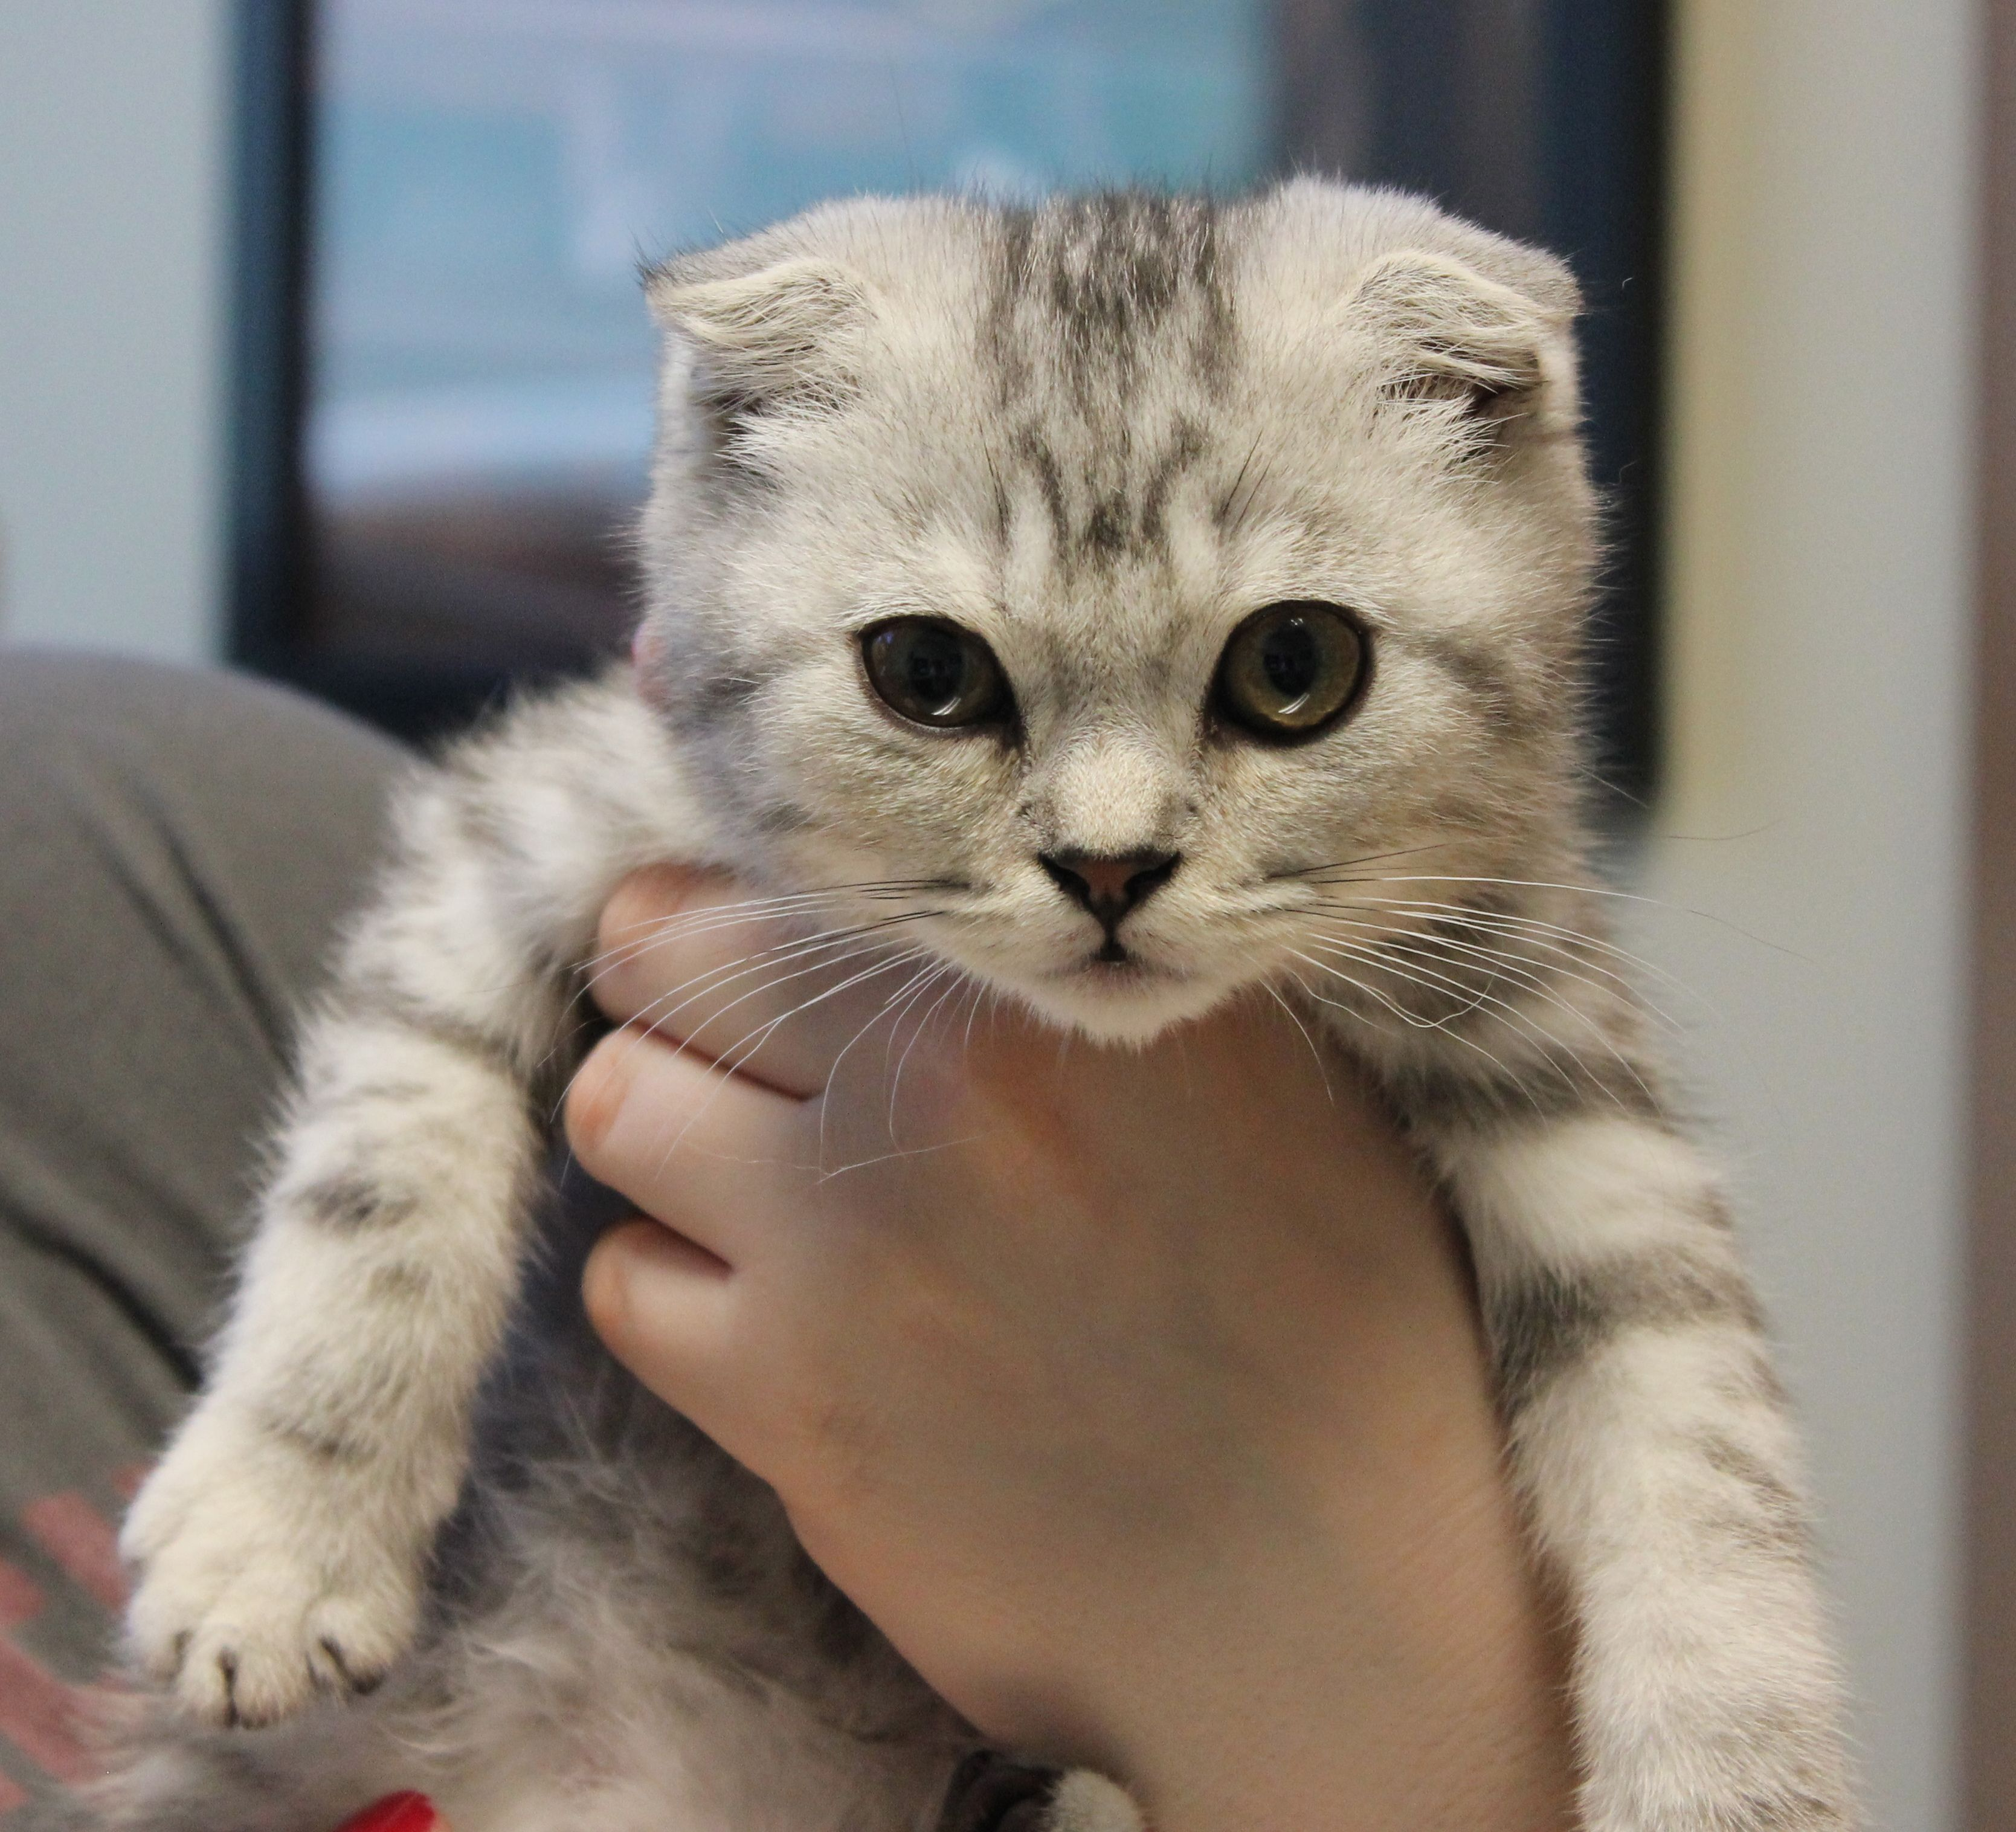 Dugal Mctabby A 13 Week Old Scottish Fold Kitten Came In To See Dr Yoakum For His New Kitten Exam All Scot Scottish Fold Kittens Cute Animals Scottish Fold